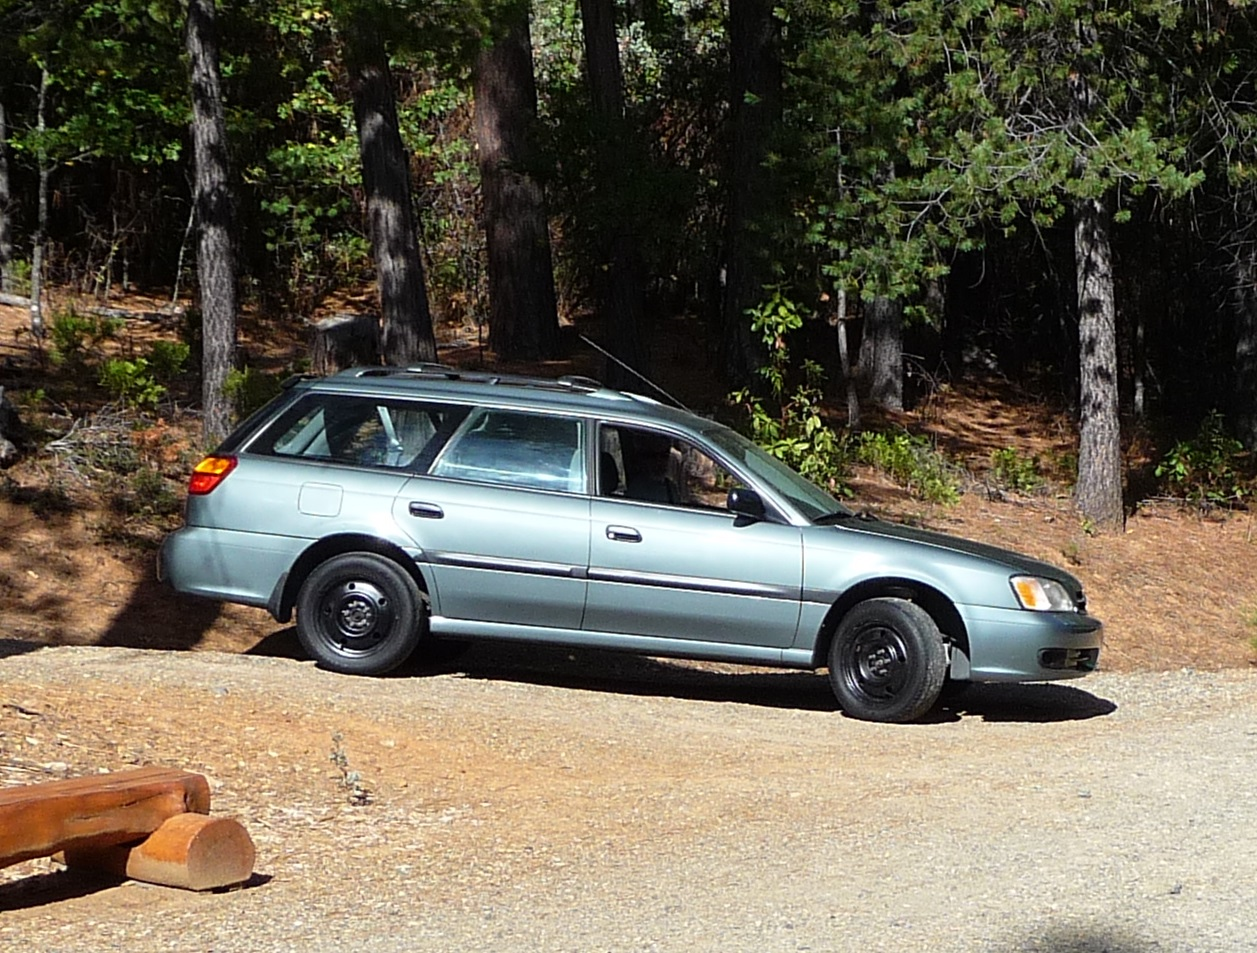 Installing Subtle Solutions 1 Lift On 01 Legacy Wagon Subaru Outback Forums